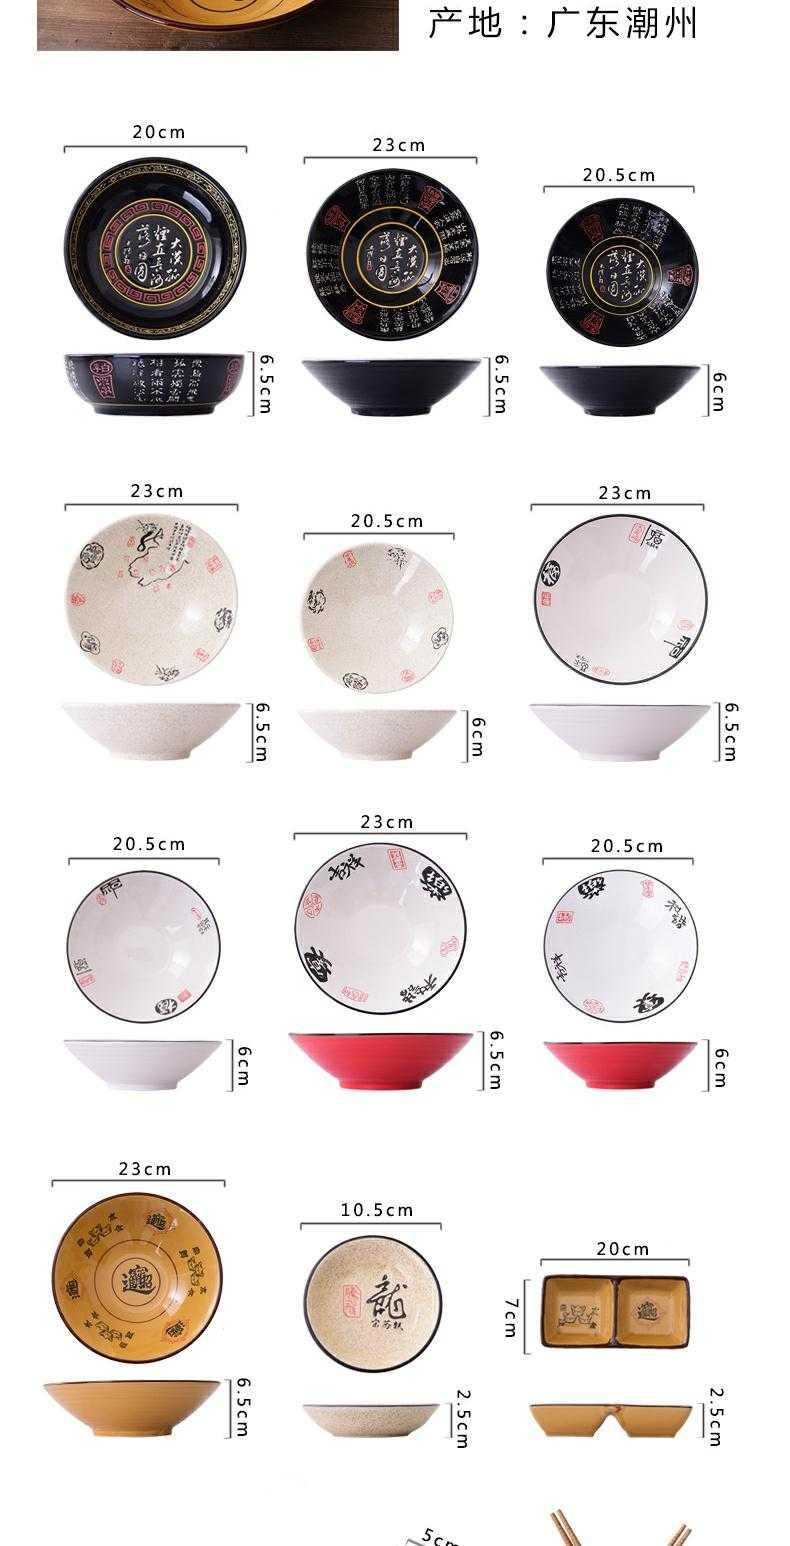 Ltd. bowl of ramen hat to Chinese creative features small ceramic bowl chongqing special lanzhou noodles bowl of noodles to restore ancient ways